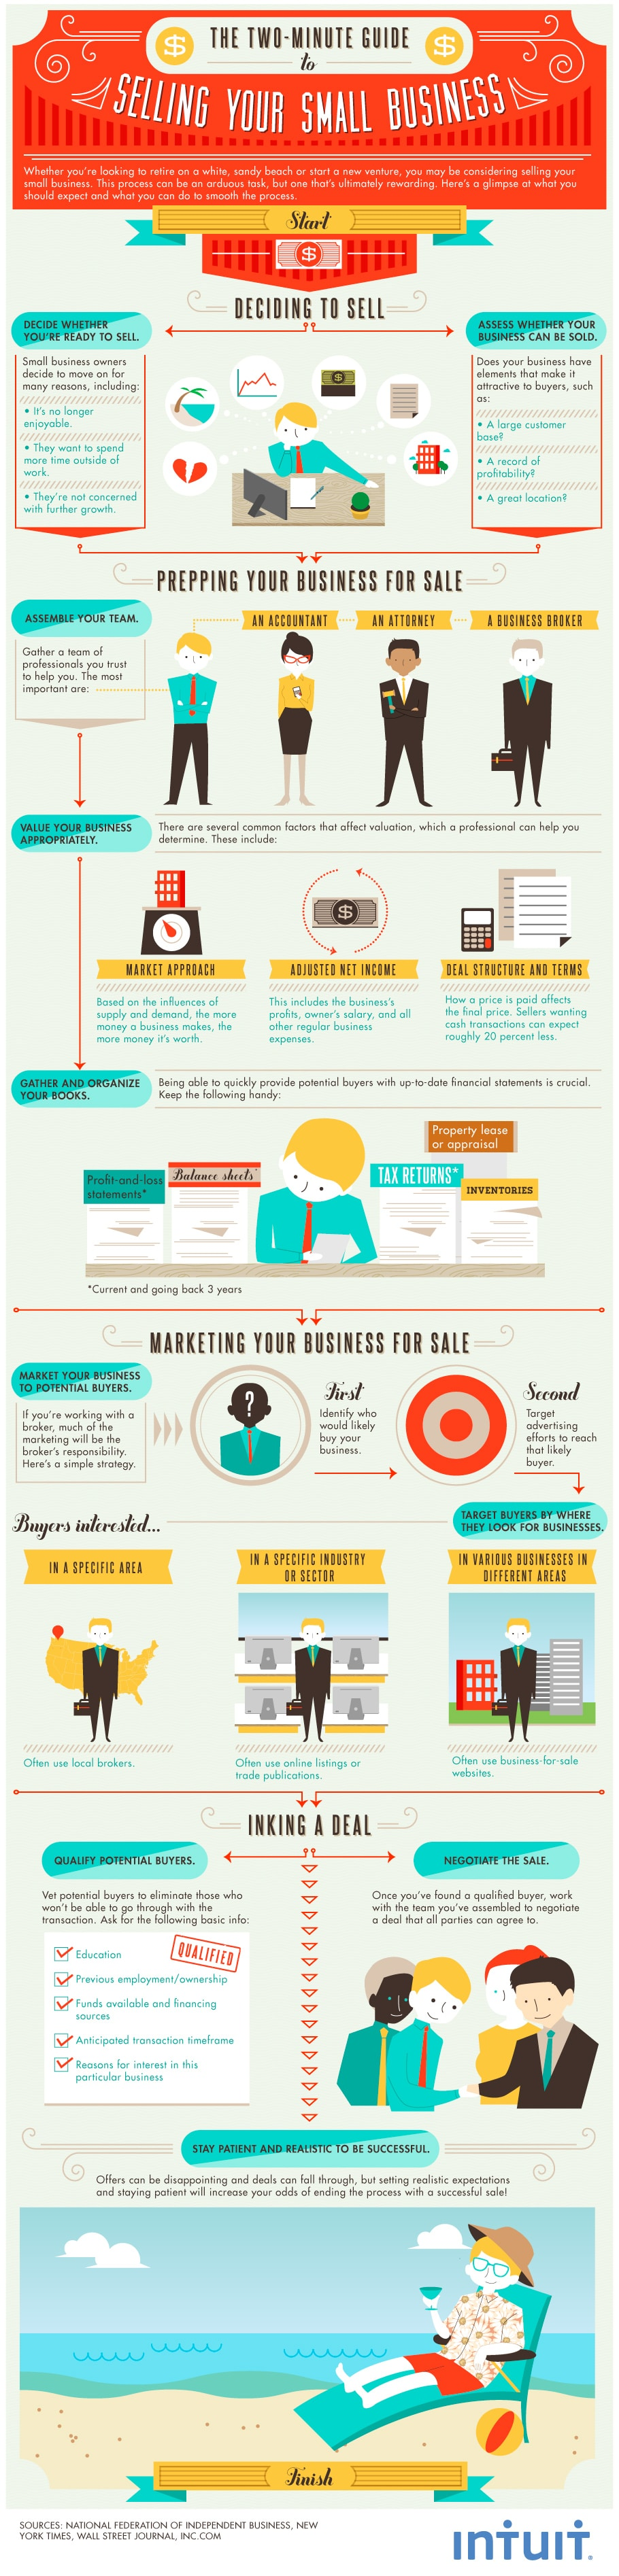 selling-your-small-business-infographic